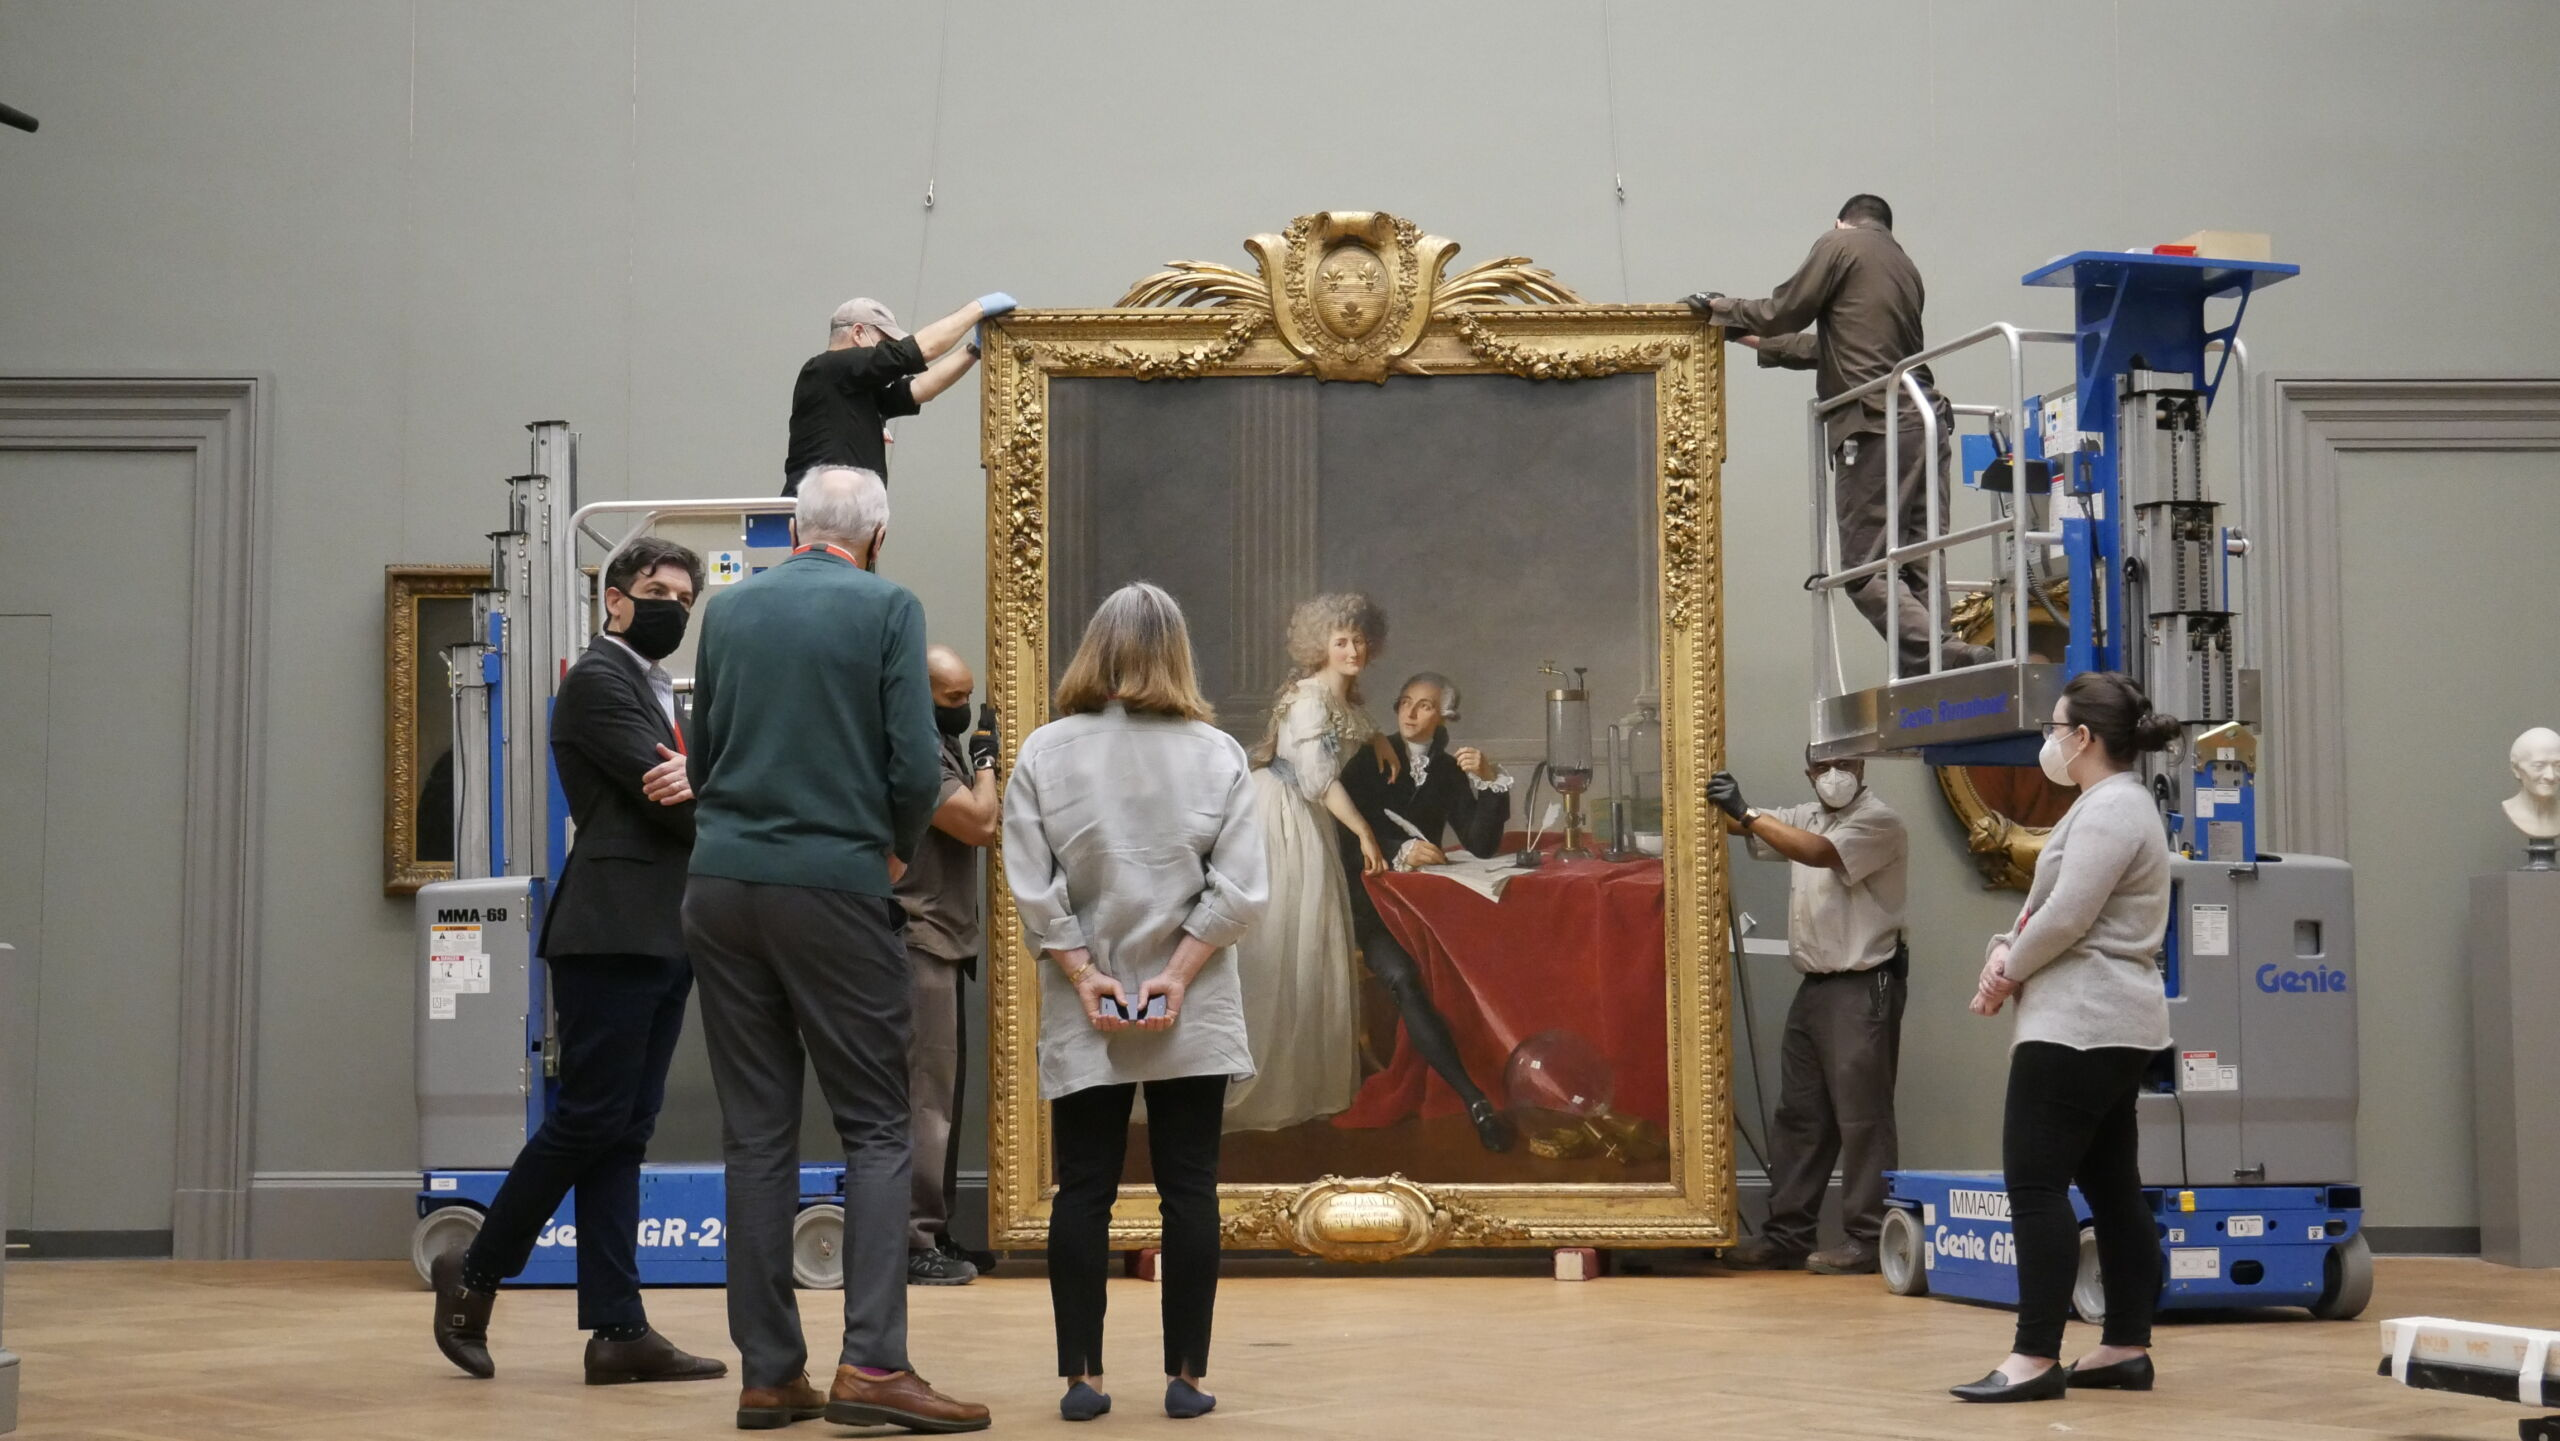 The hanging of Jacques Louis David's Portrait of Antoine-Laurent and Marie Anne Lavoisier at The Met Museum, New York. Credit: Eddie Knox © Oxford Films, 2021. Image courtesy PBS.